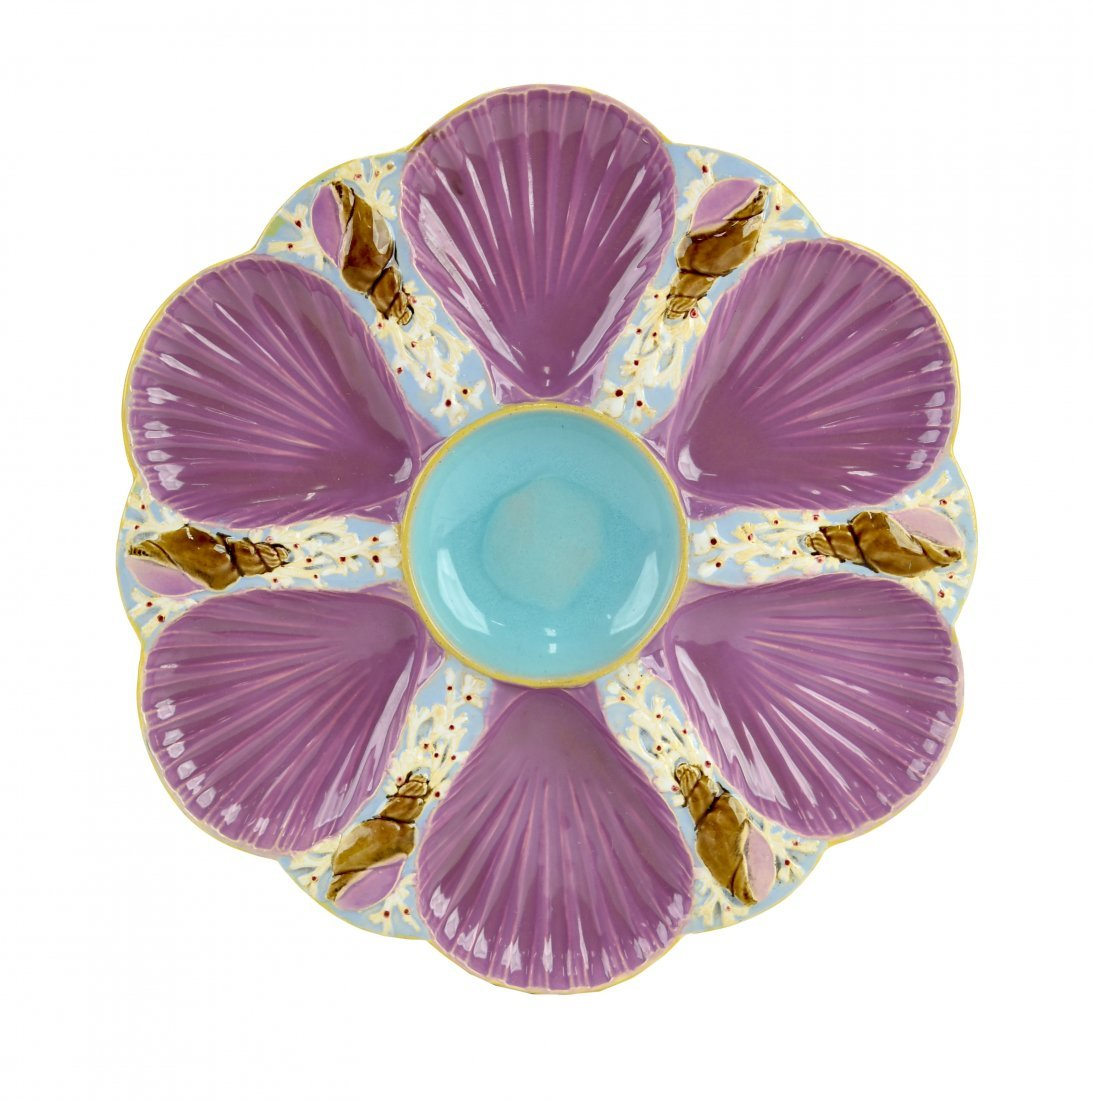 A Holdcroft Majolica 6 well oyster plate c.1875